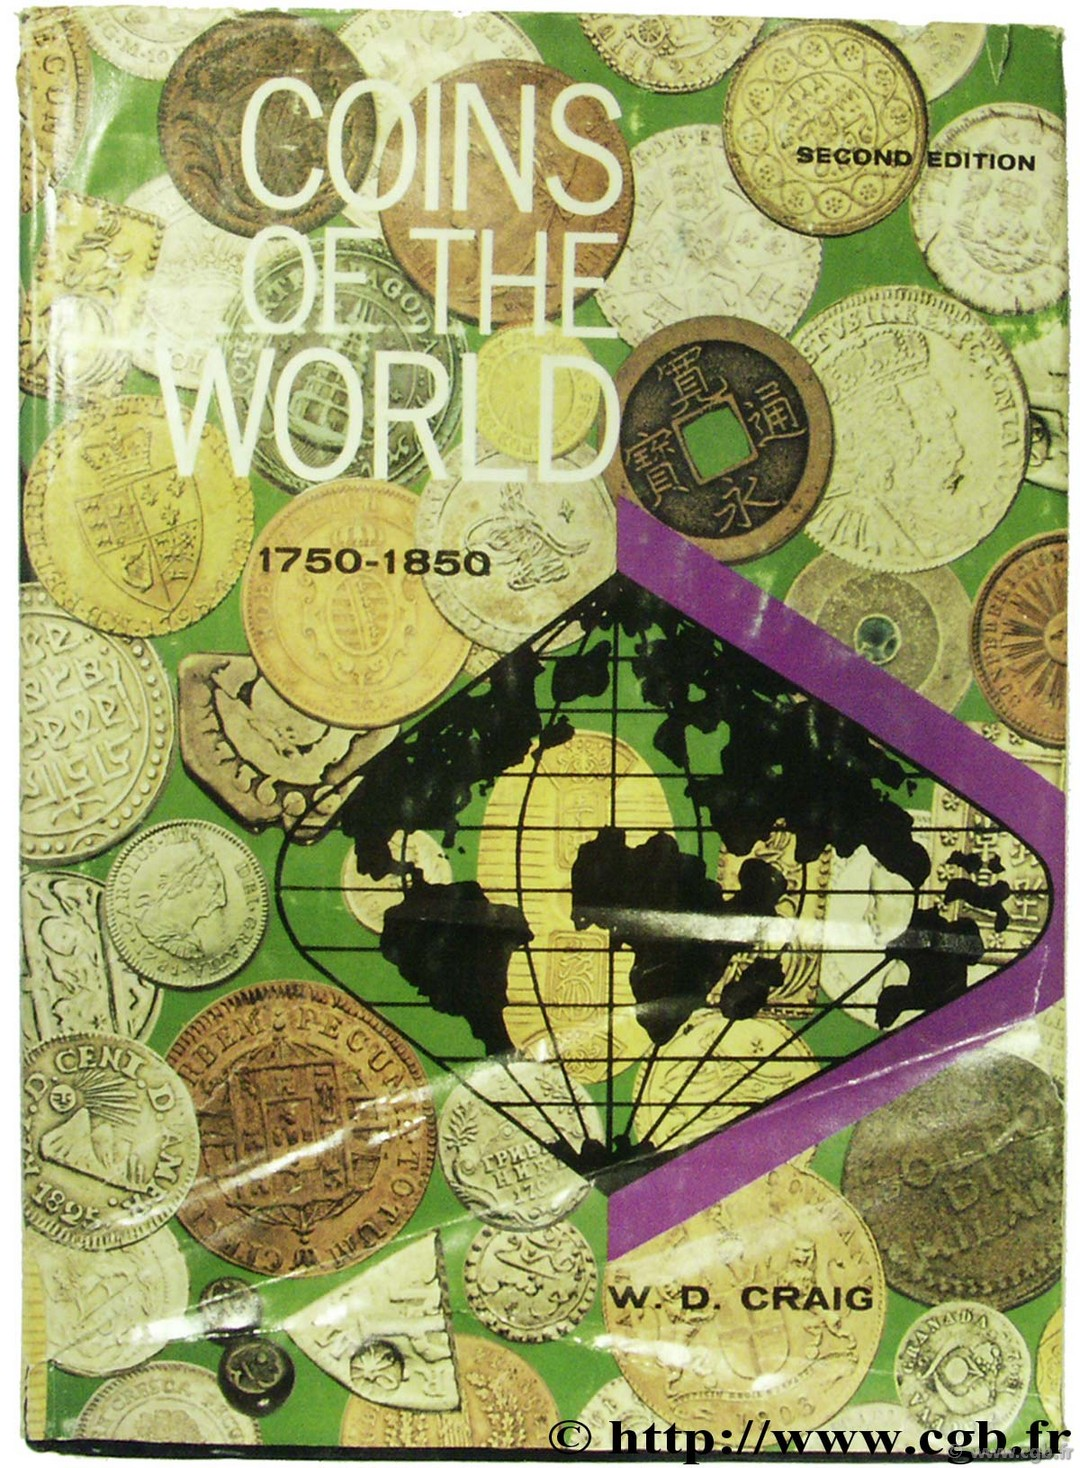 Coins of the World 1750-1850 2nd edition CRAIG W.-D.